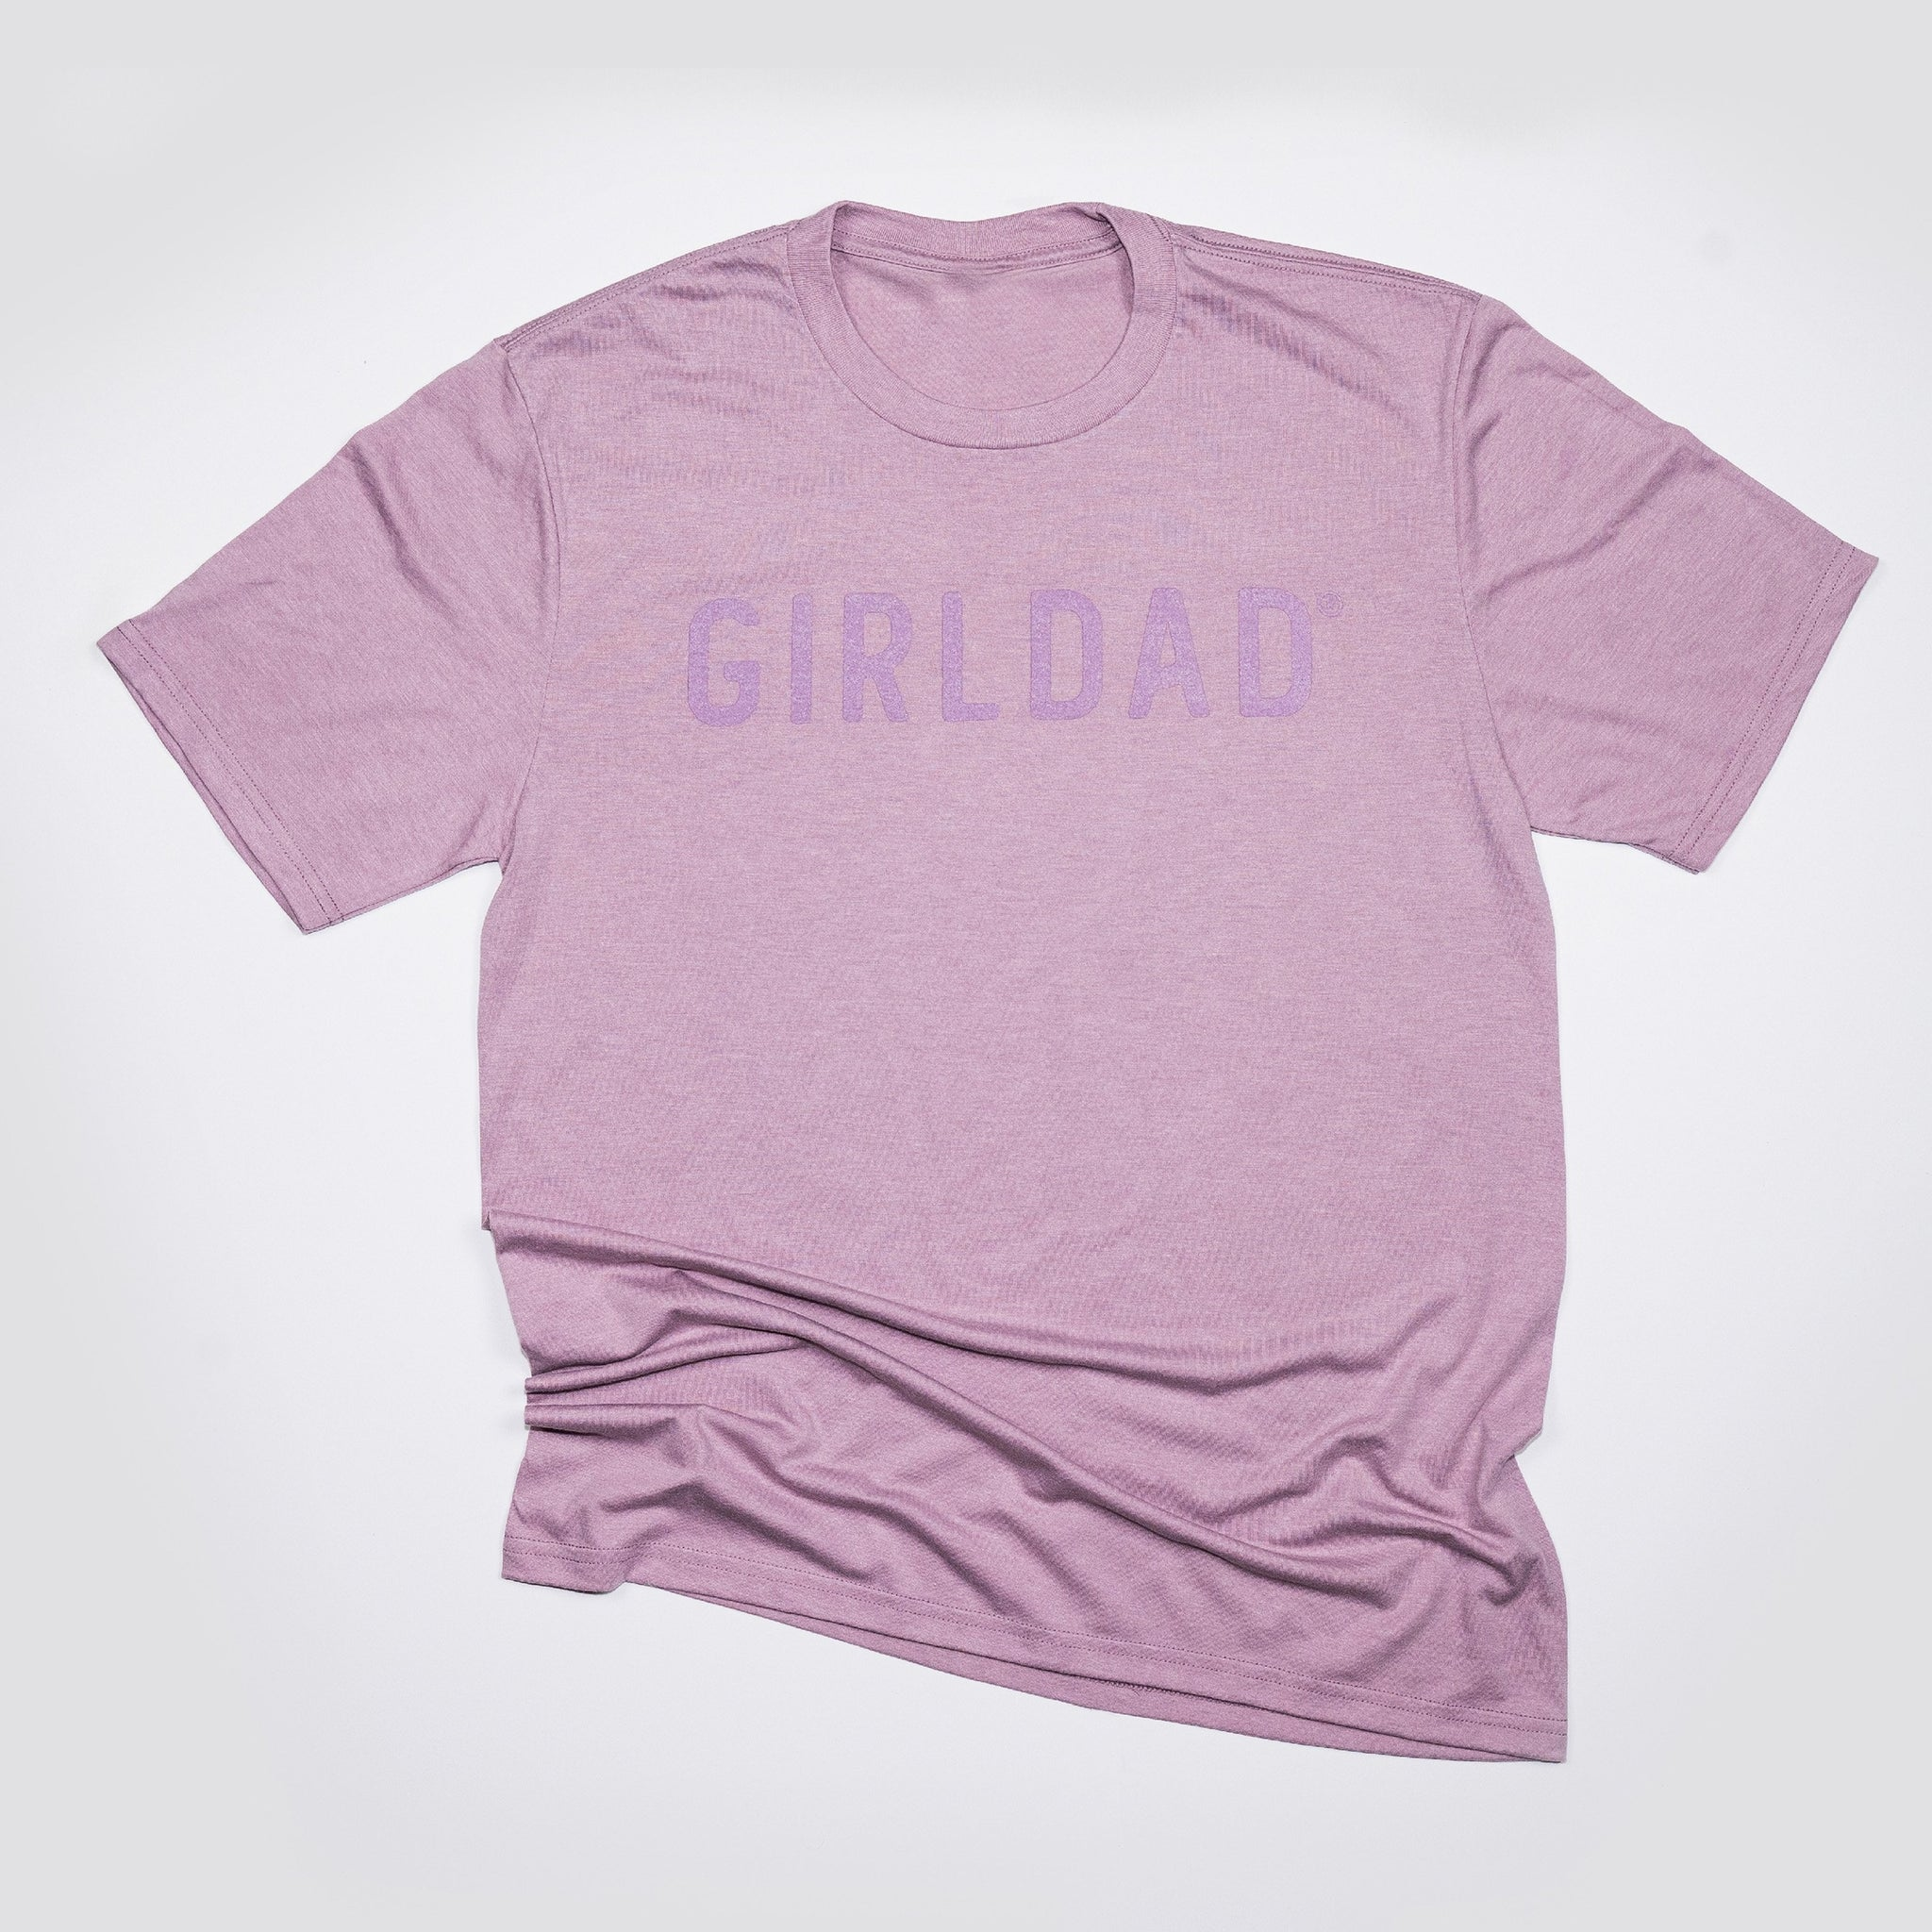 Girldad® Monochromatic Mens Crew Tee Lavender on Lavender